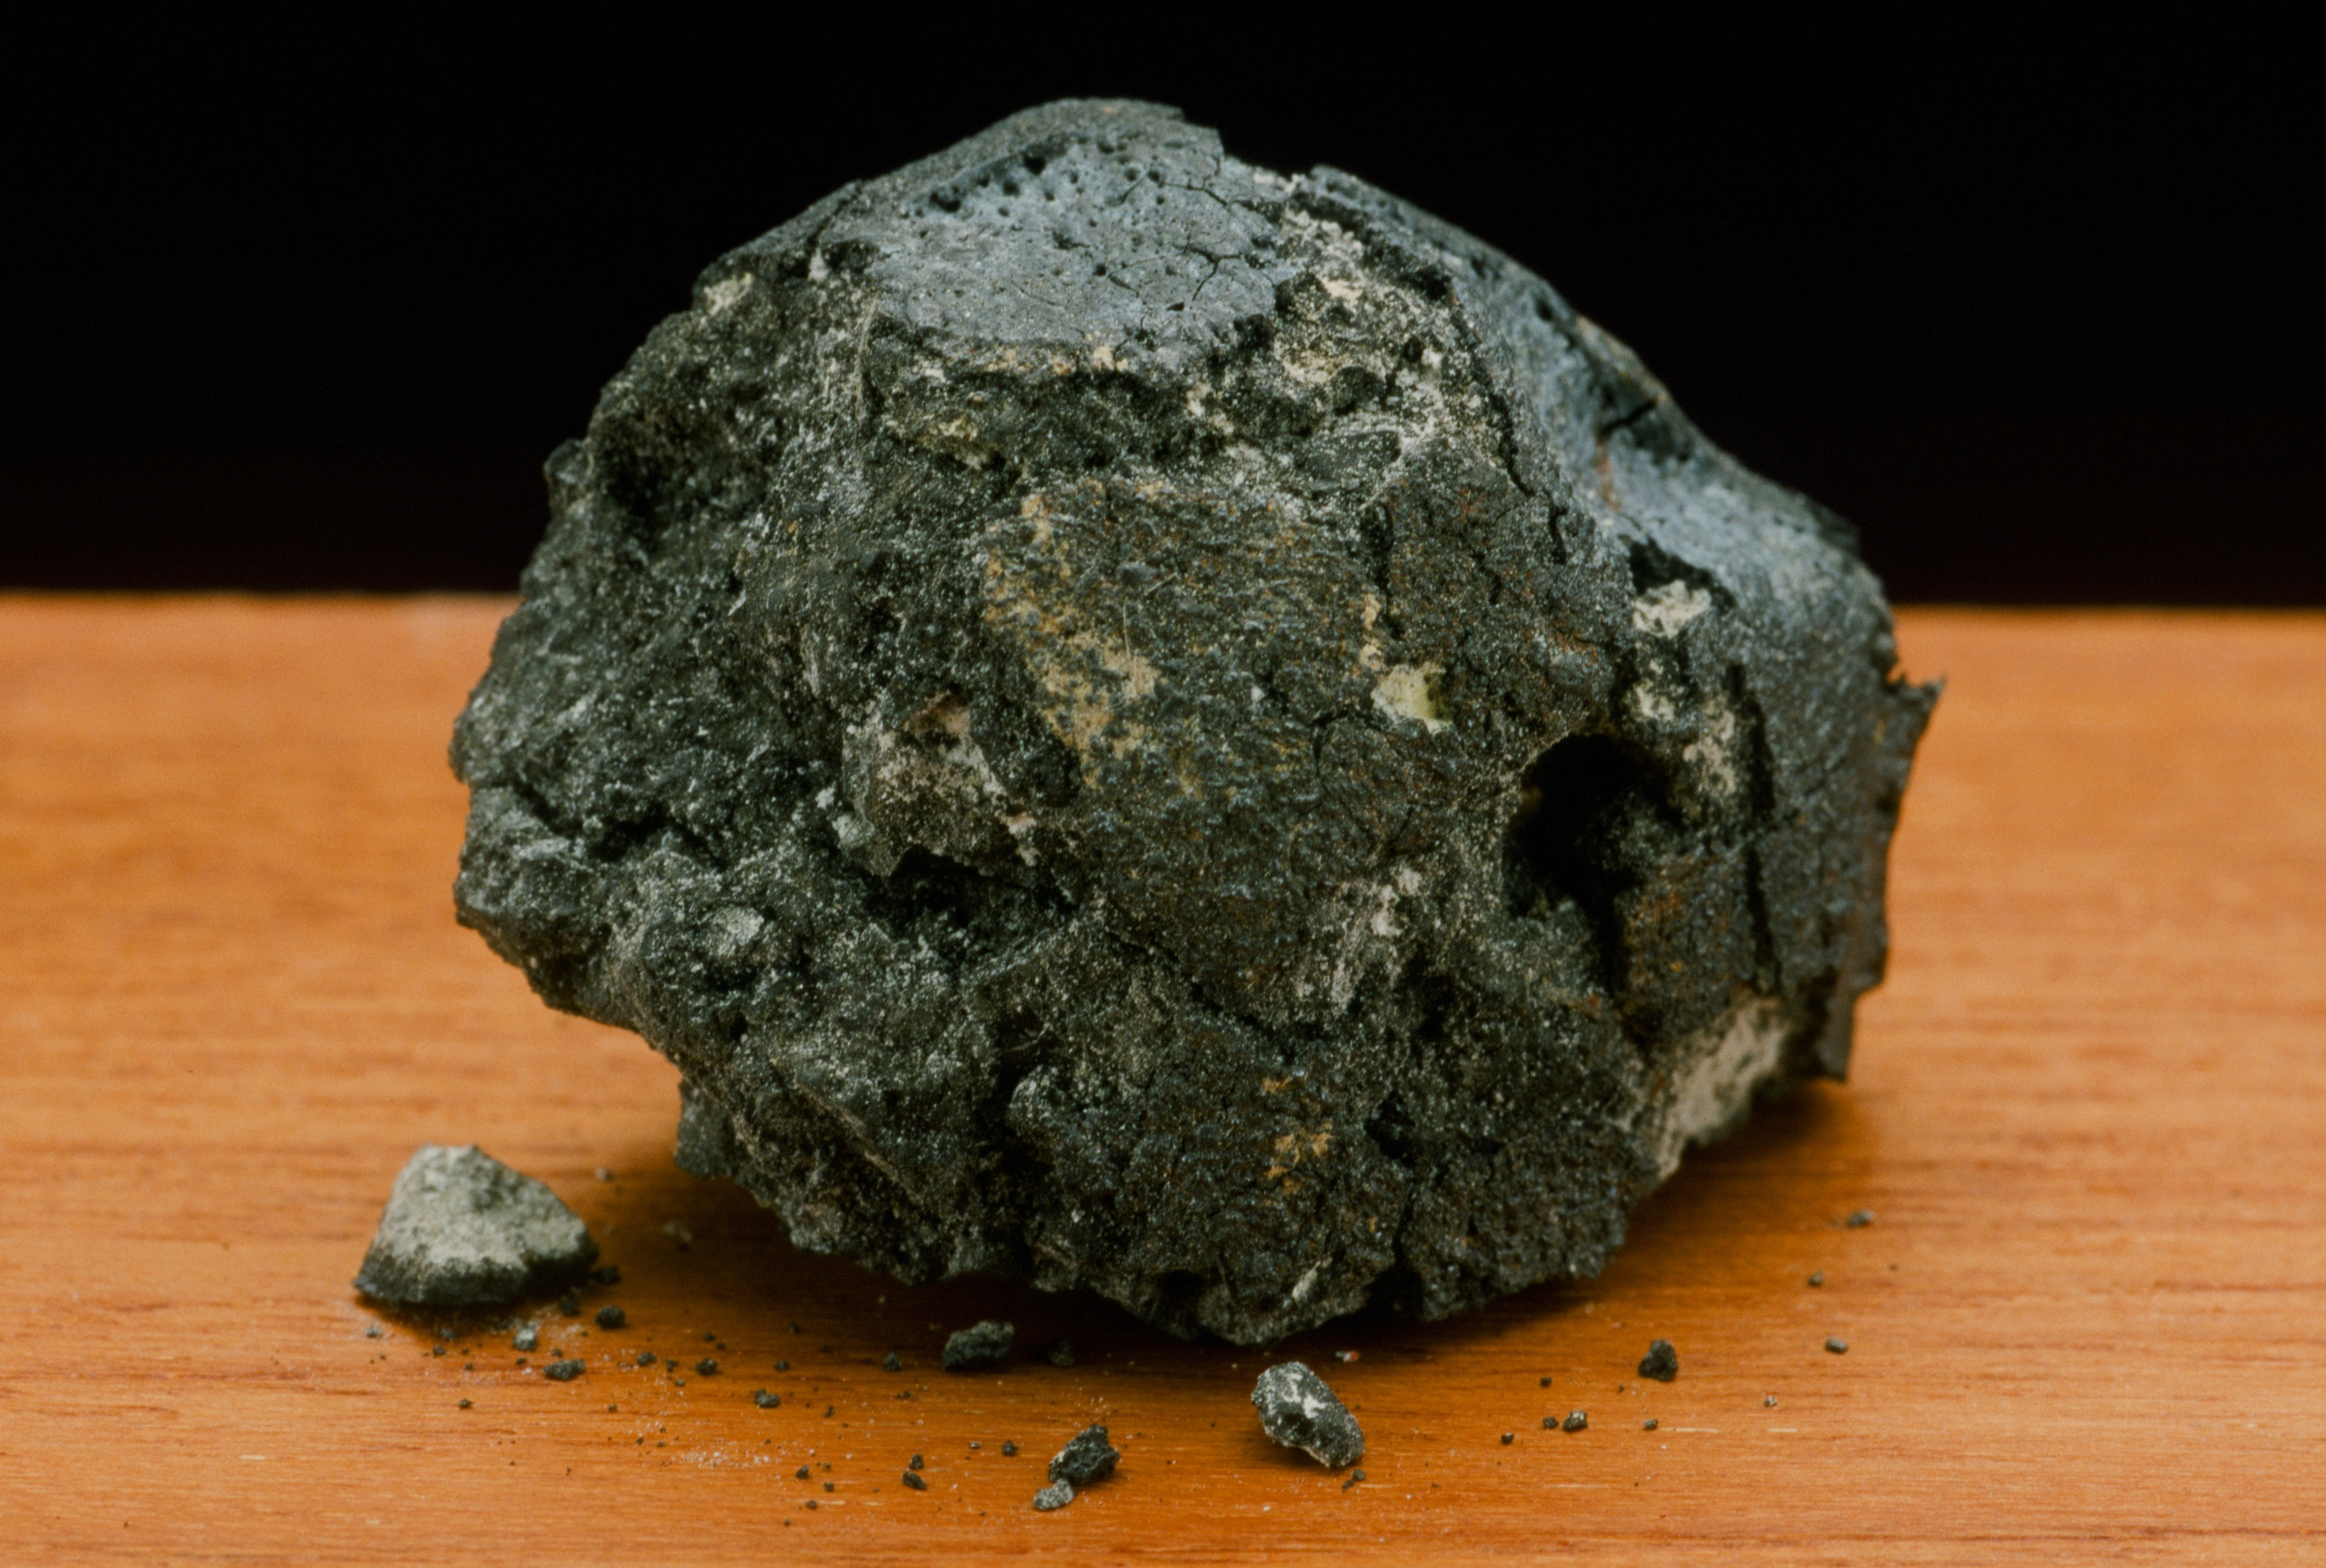 A carbonaceous chondrite on a wooden surface